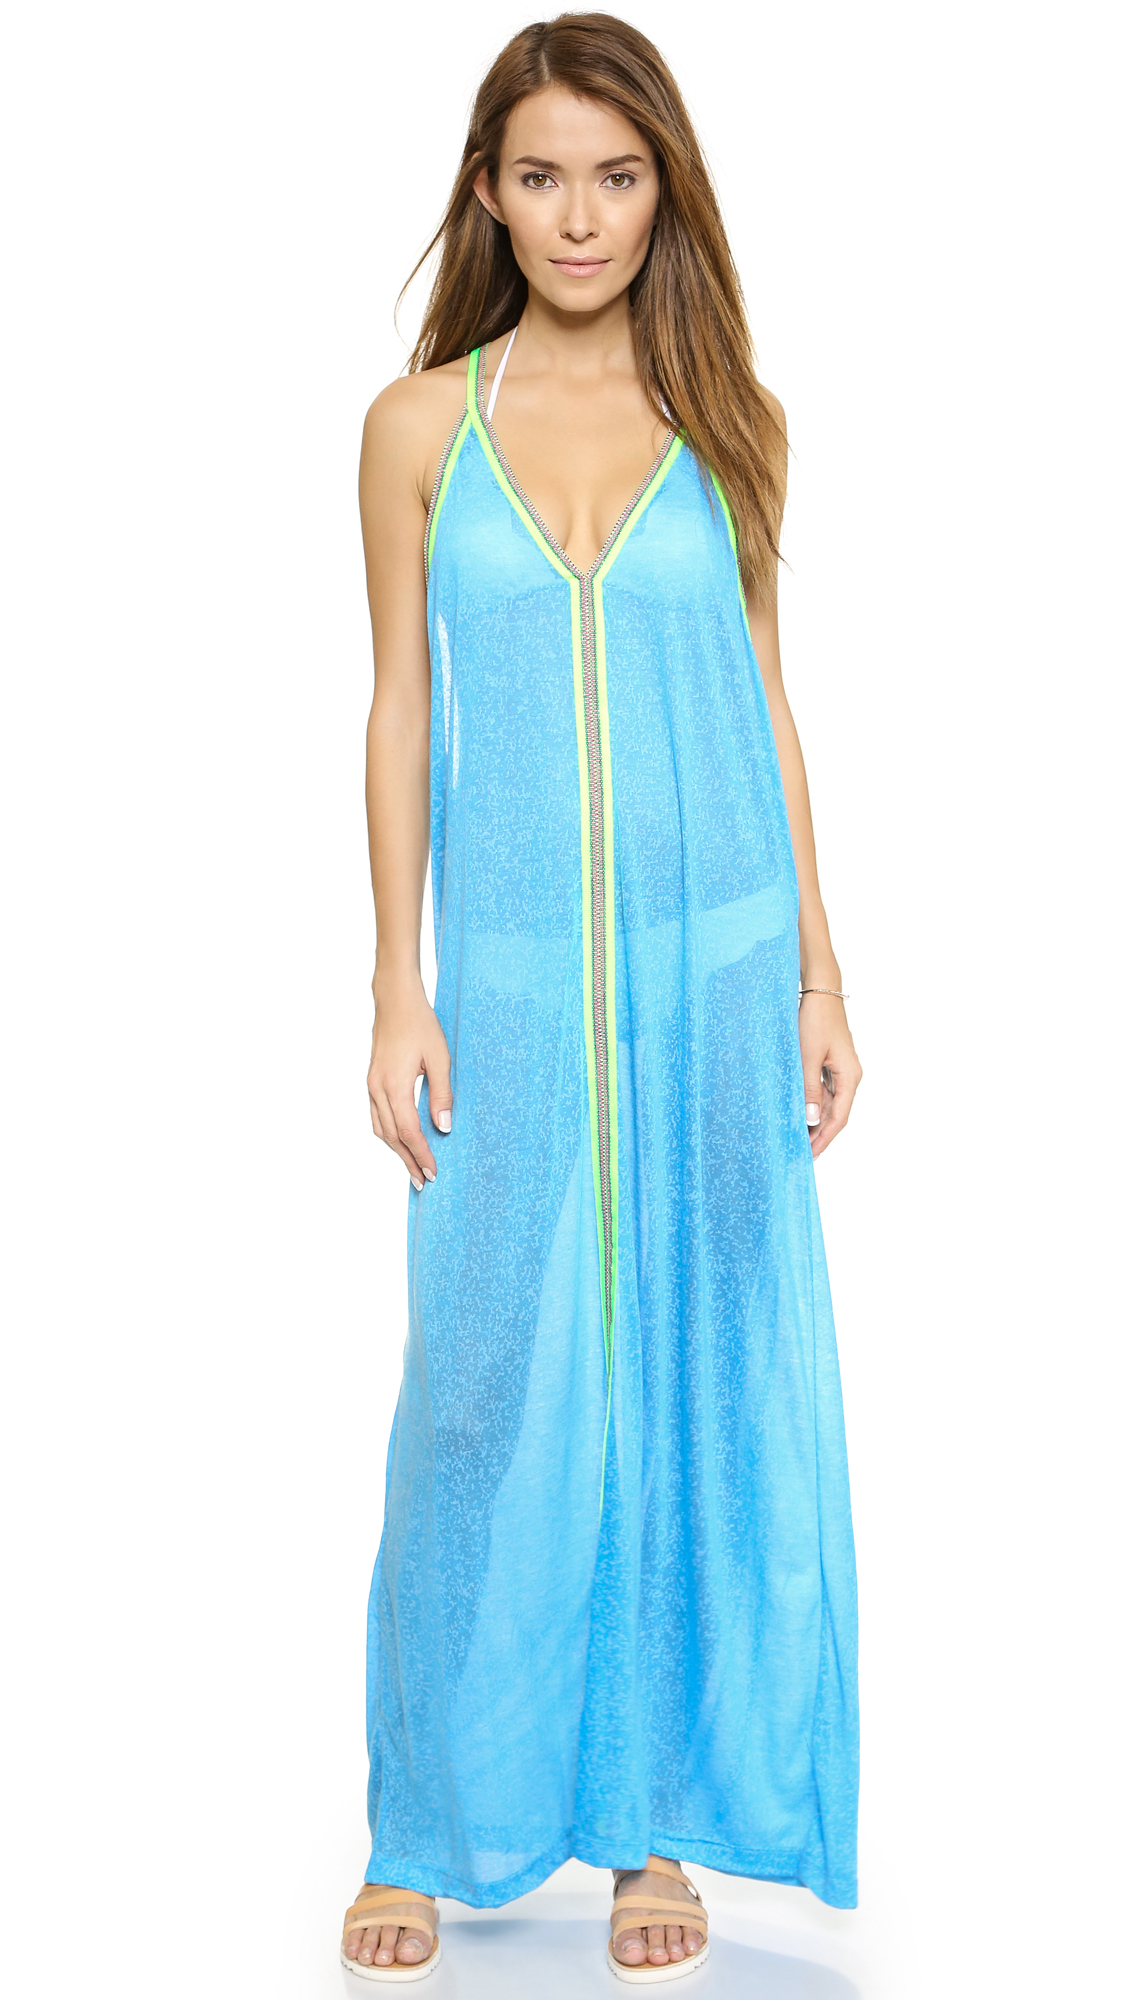 Pitusa Sun Maxi Dress - Blue